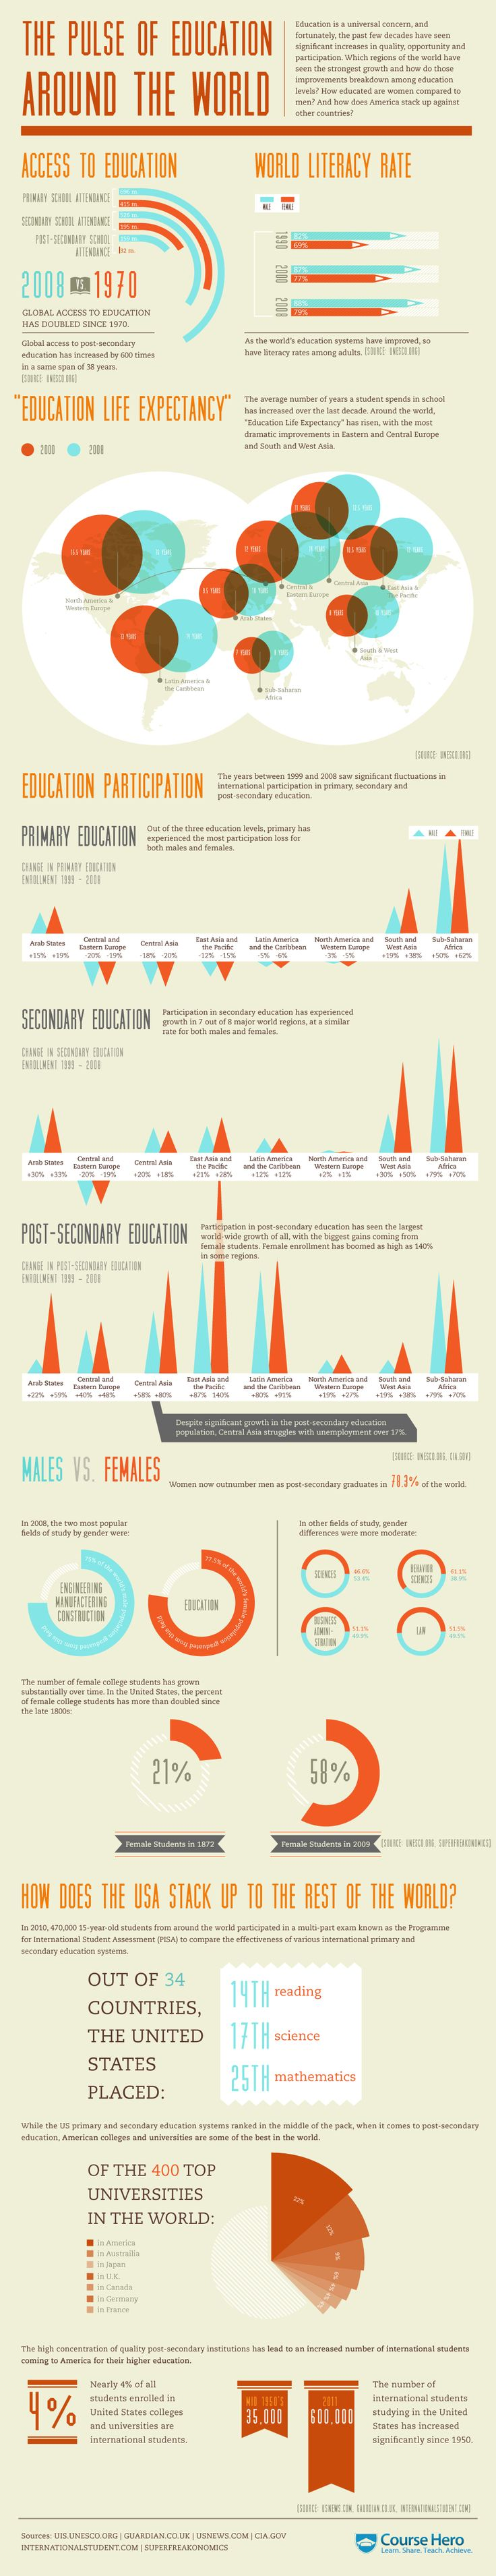 In this infographic, @CourseHero examines how global education has progressed over the last few decades, delving into how participation in all levels of schooling has changed, how women compare to men and how the US education system stacks up against its international counterparts.